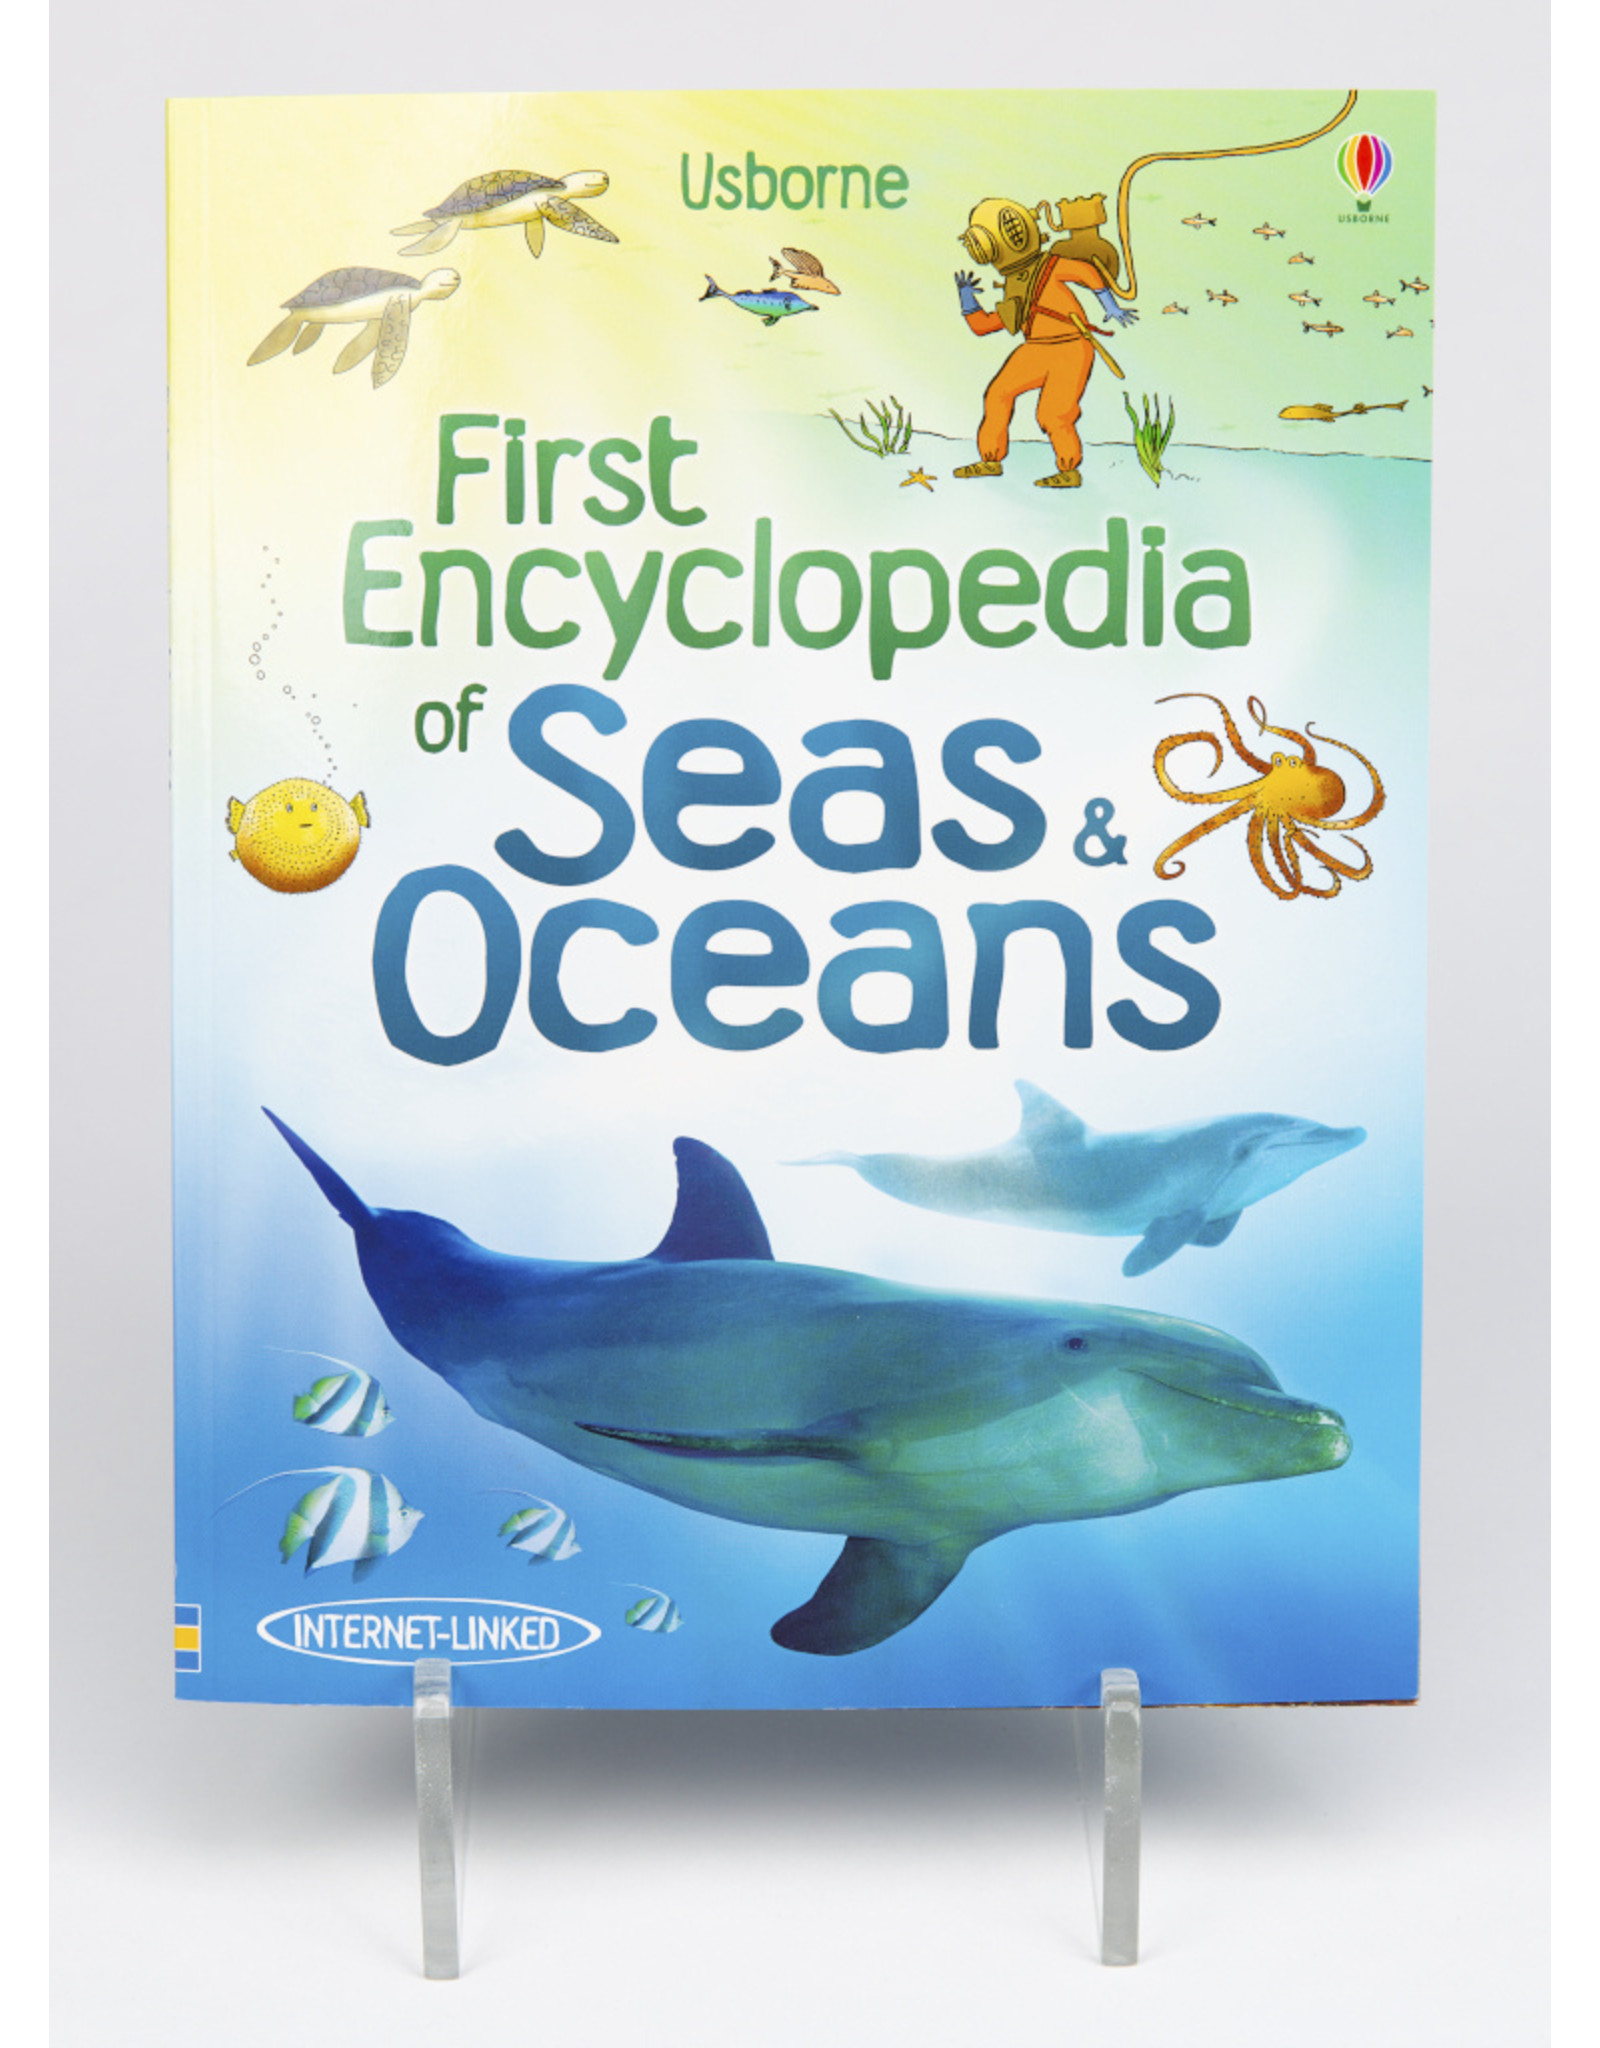 First Encyclopedia Seas & Oceans